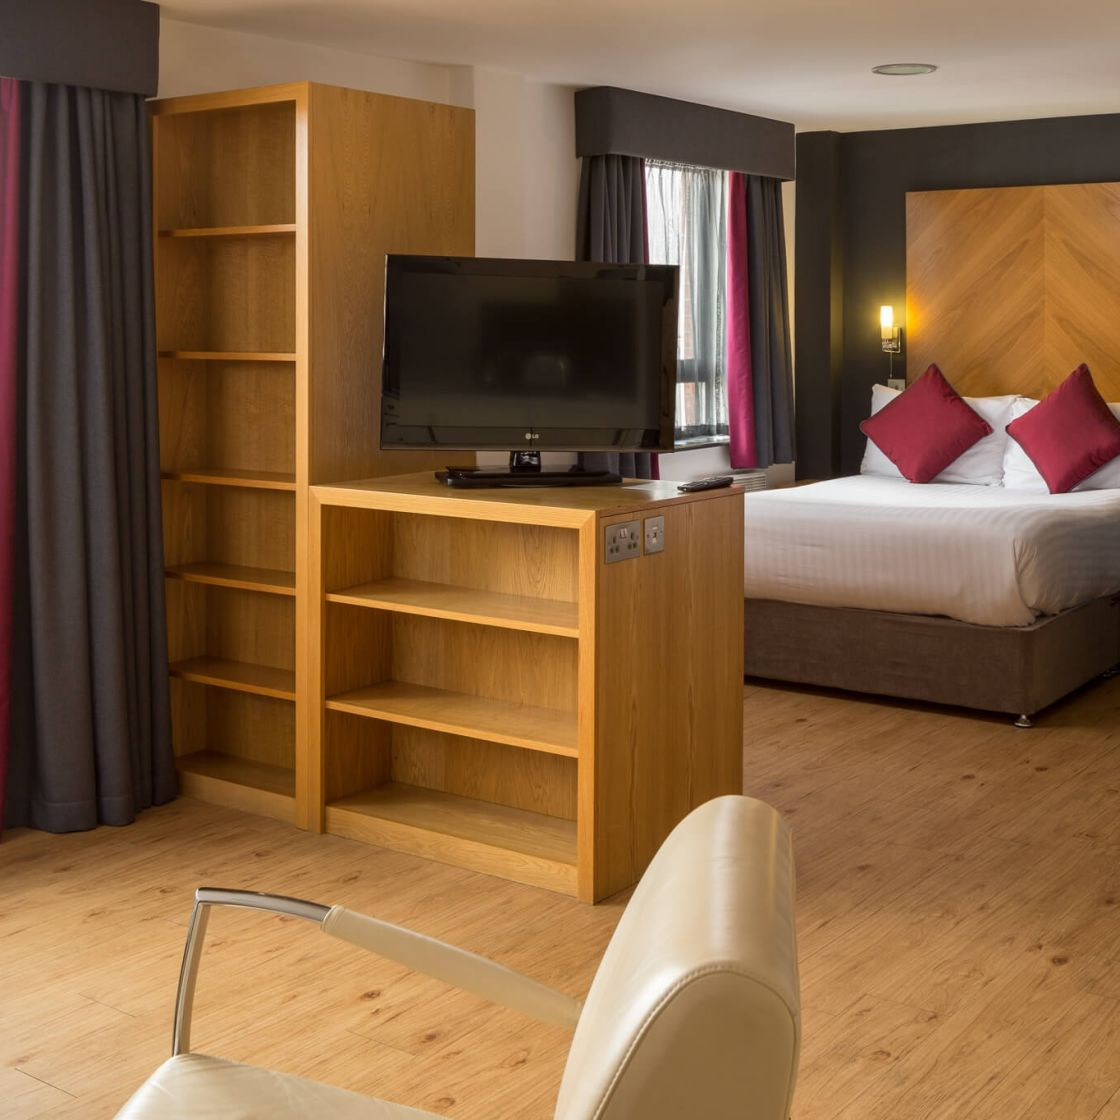 Grande studio student apartment in Leeds. King-size bed and TV. IconInc @ Roomzzz Leeds City West